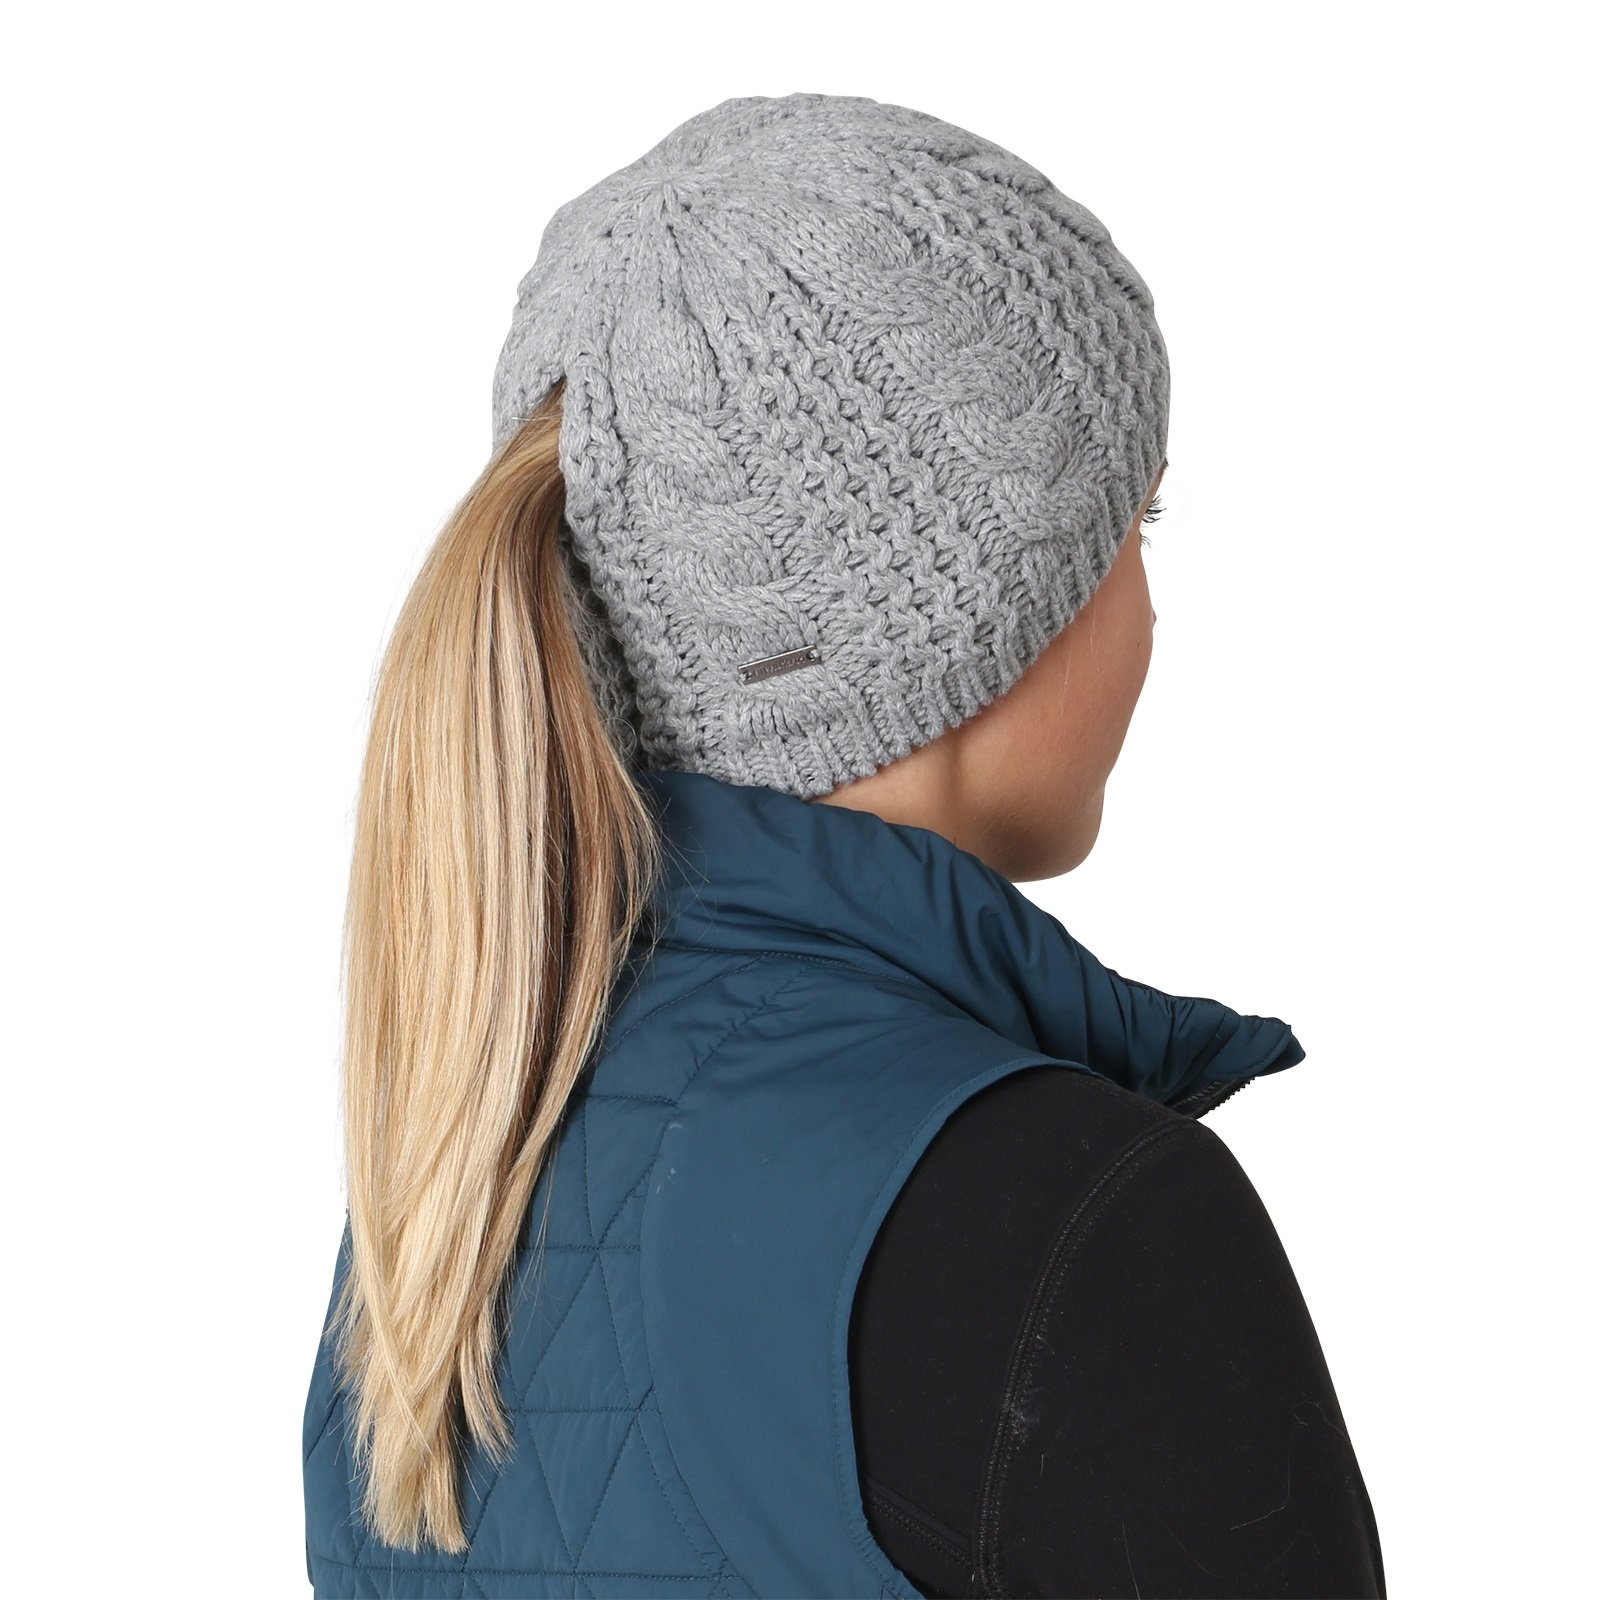 TrailHeads Women's Cable Knit Ponytail Beanie - storm grey by TrailHeads (Image #4)